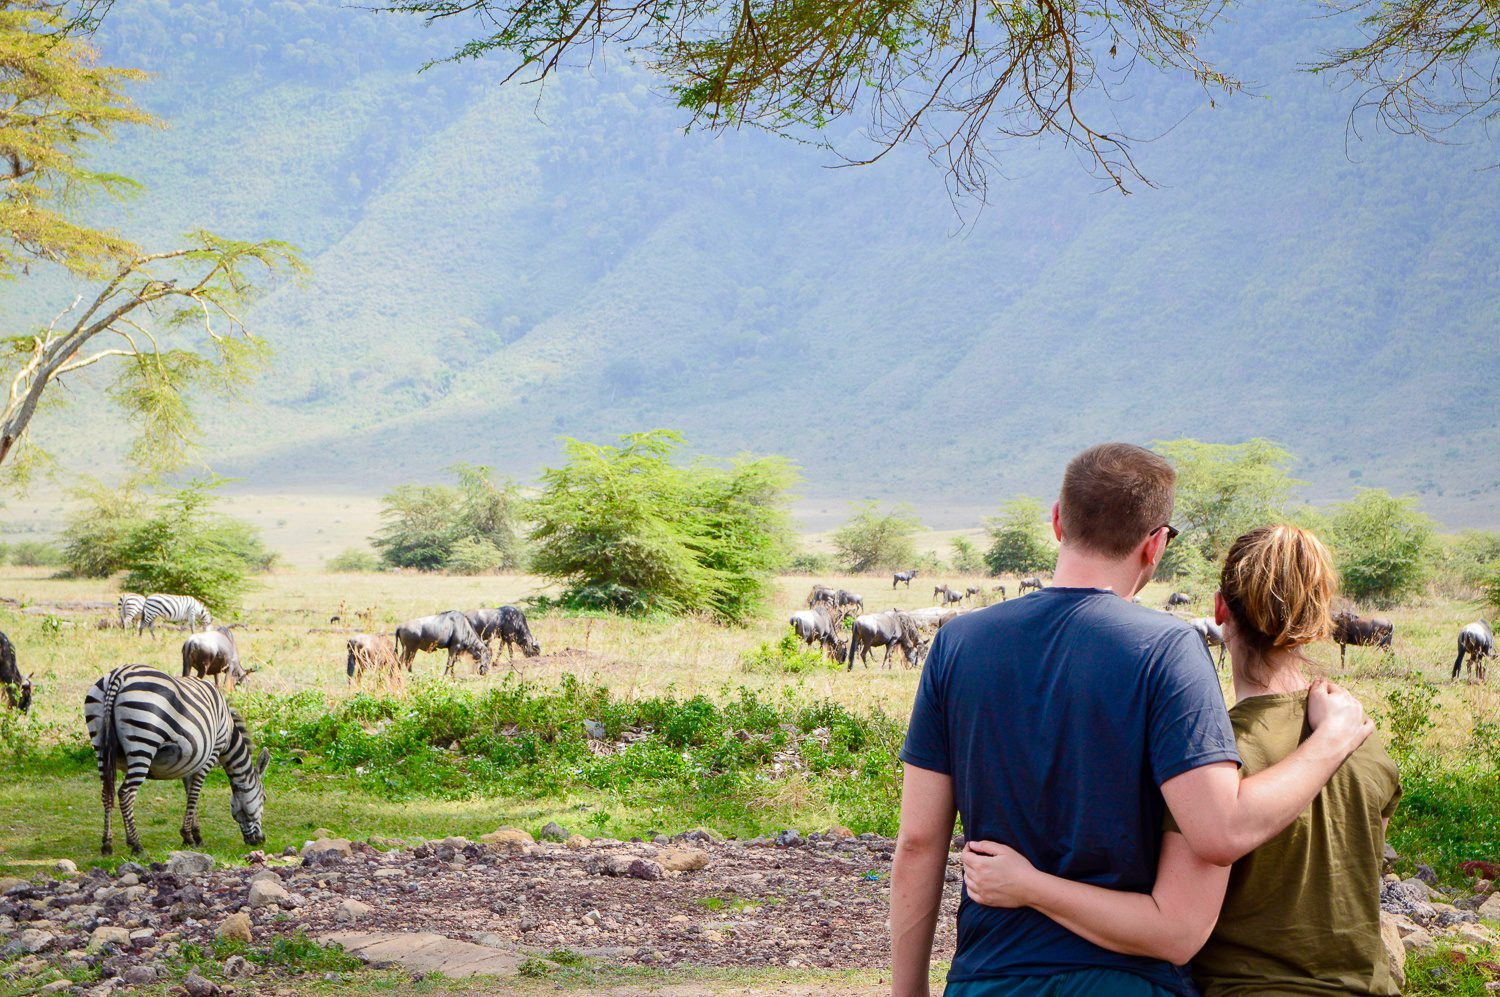 Taking it all in at the Ngorongoro Crater in Tanzania